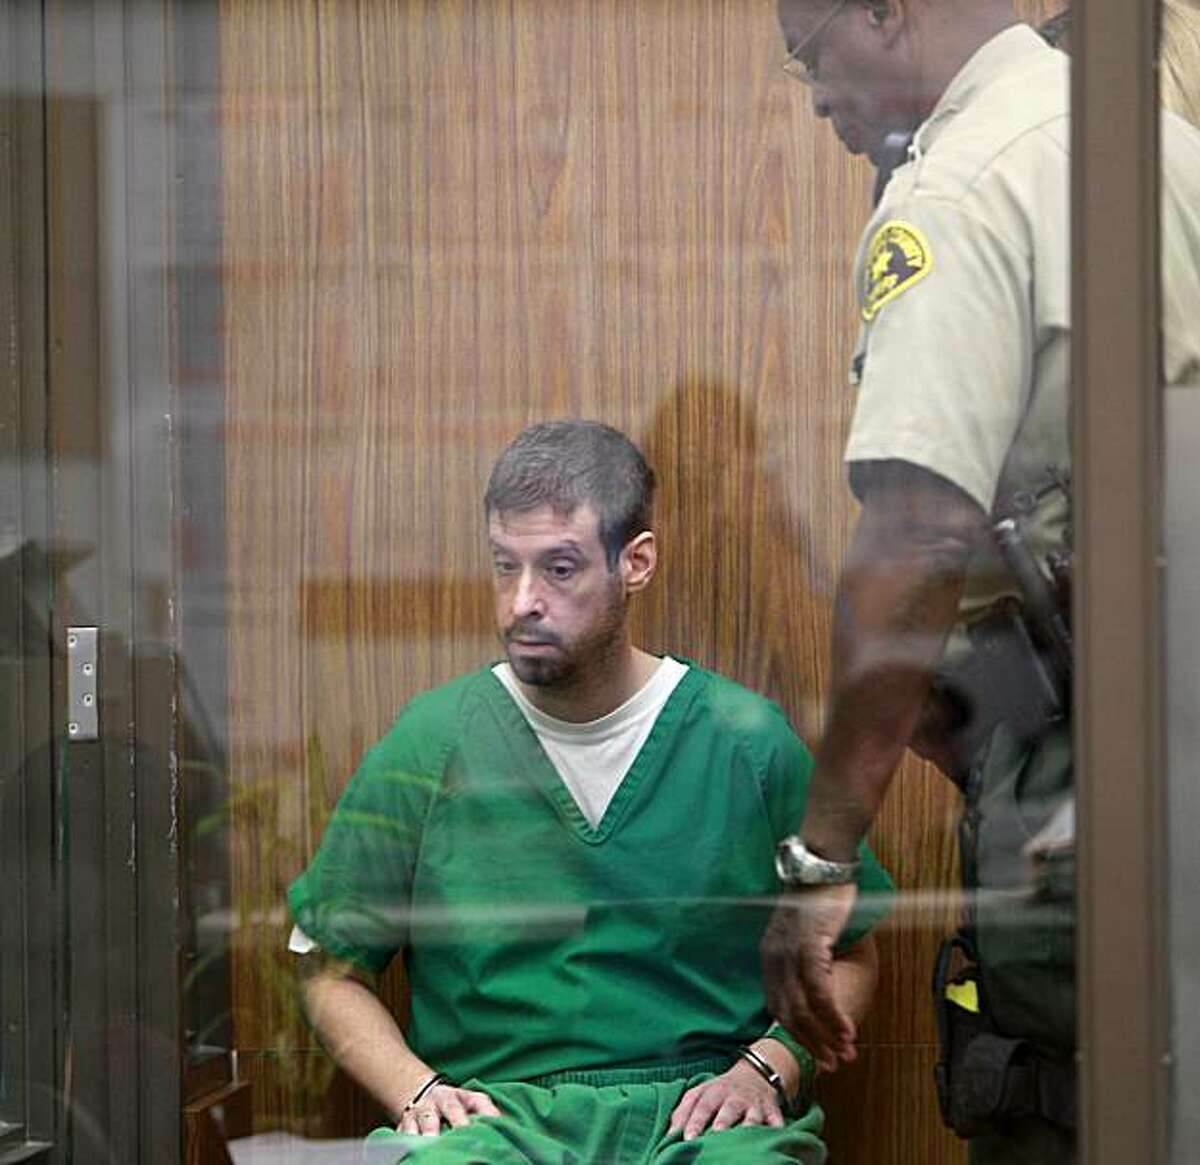 Brendan Liam O'Rourke is seated in the holding box in a San Diego Superior Courtroom where he was arraigned on charges stemming from an incident at the Kelly Elementary School in Carlsbad, Calif. where Orourke allegedly opened fire with a hand gun, wounding two elementary school students Wednesday, Oct. 13, 2010, in Vista.